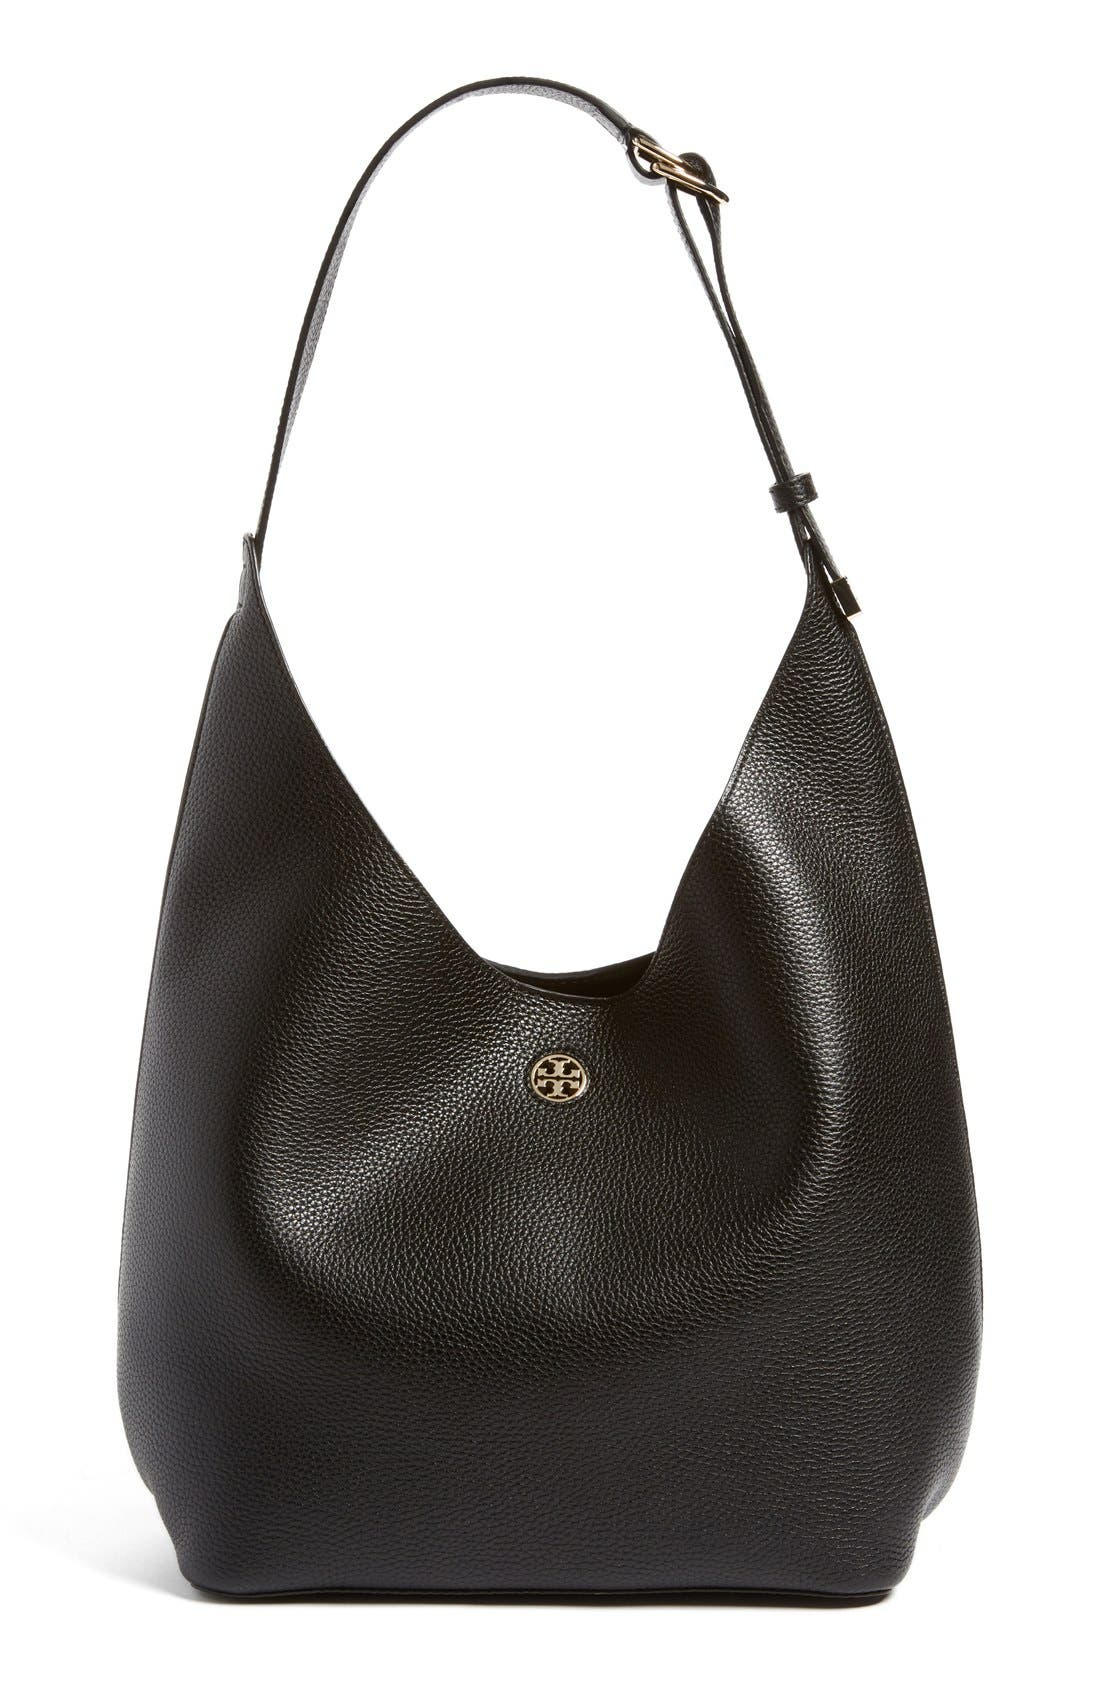 Main Image - Tory Burch 'Perry' Leather Hobo